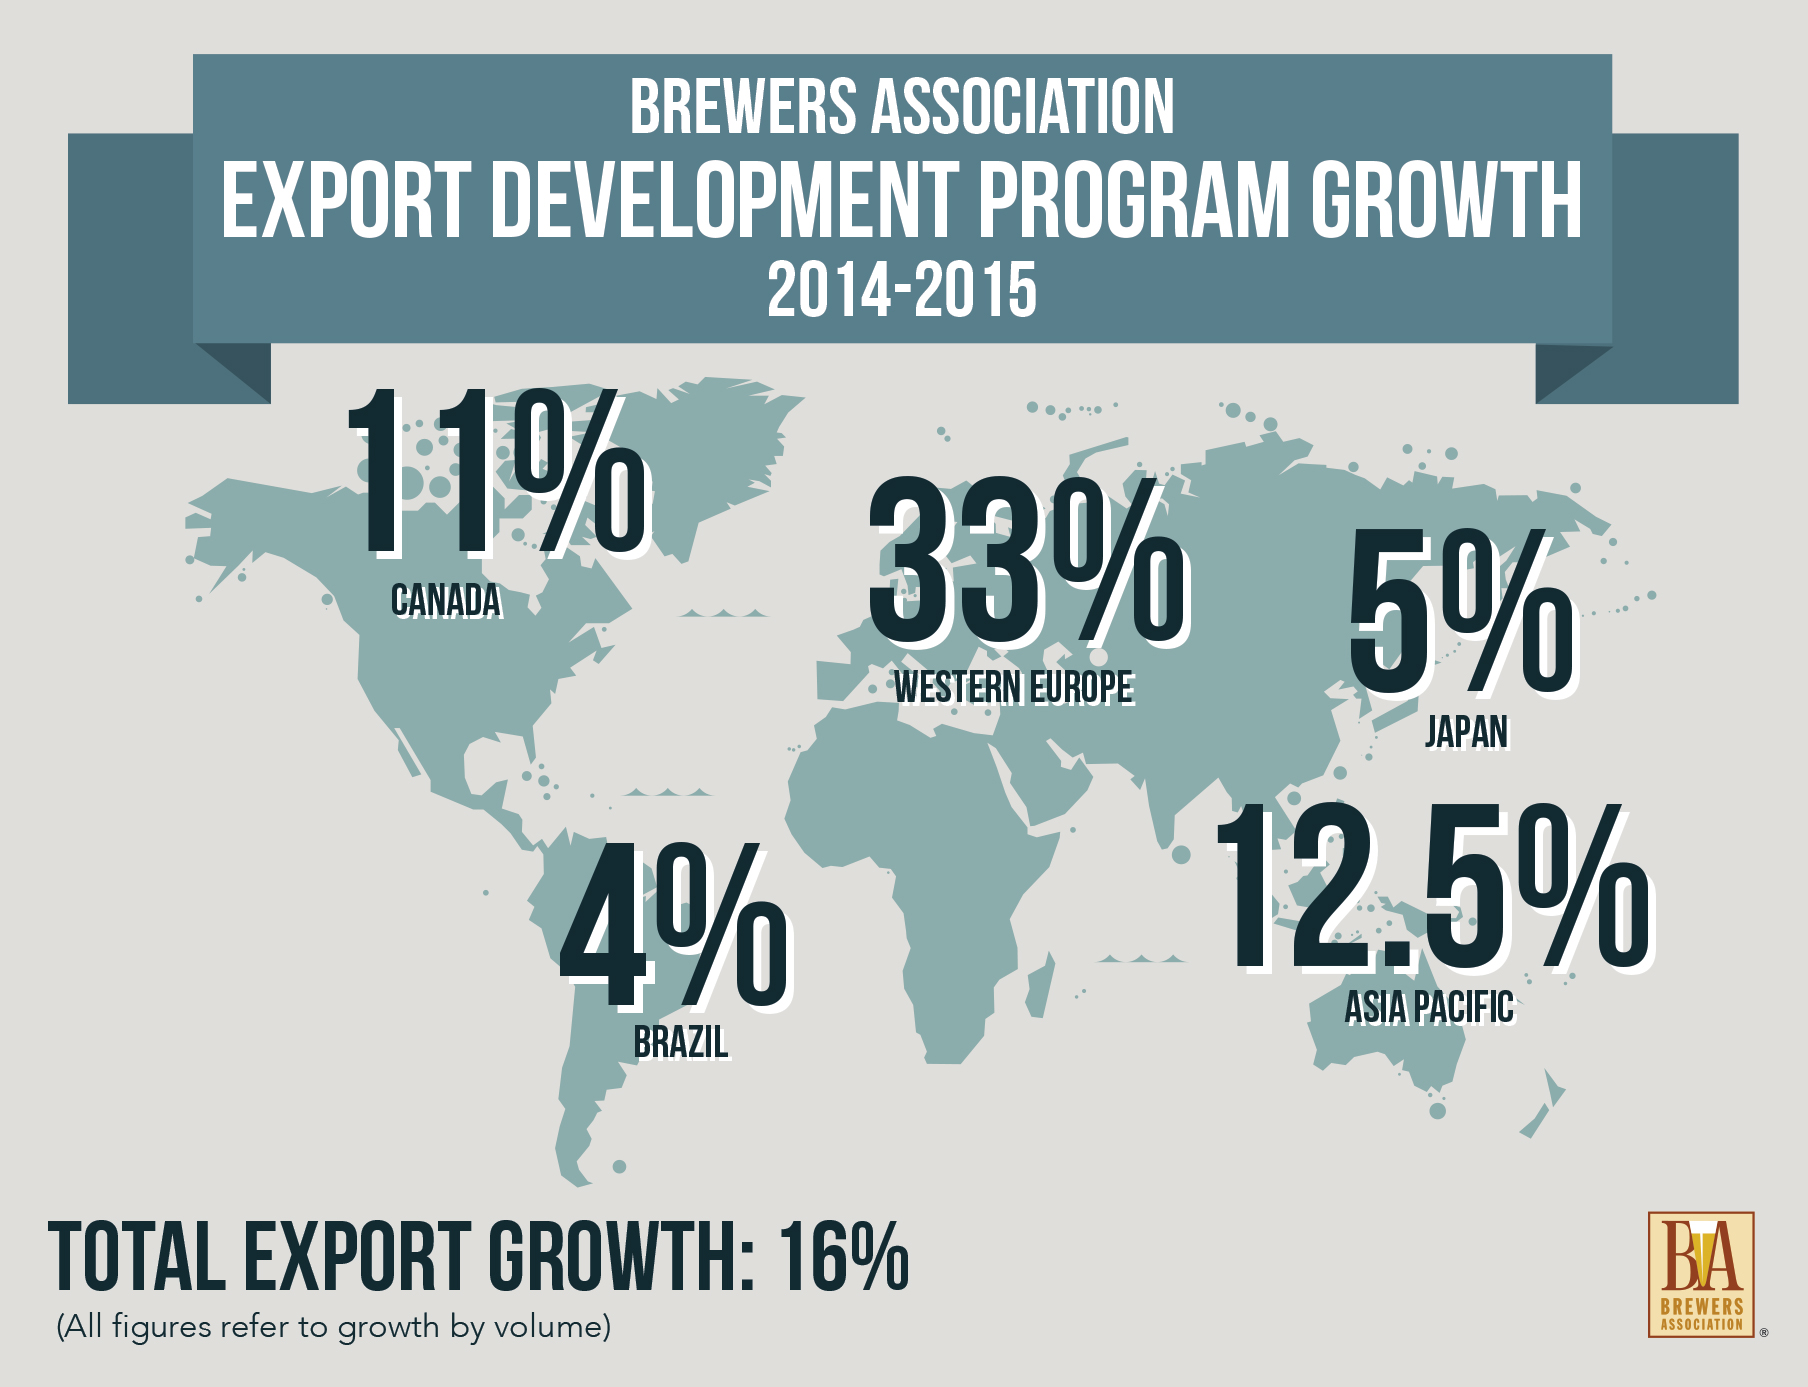 2015 Export Development Program Growth